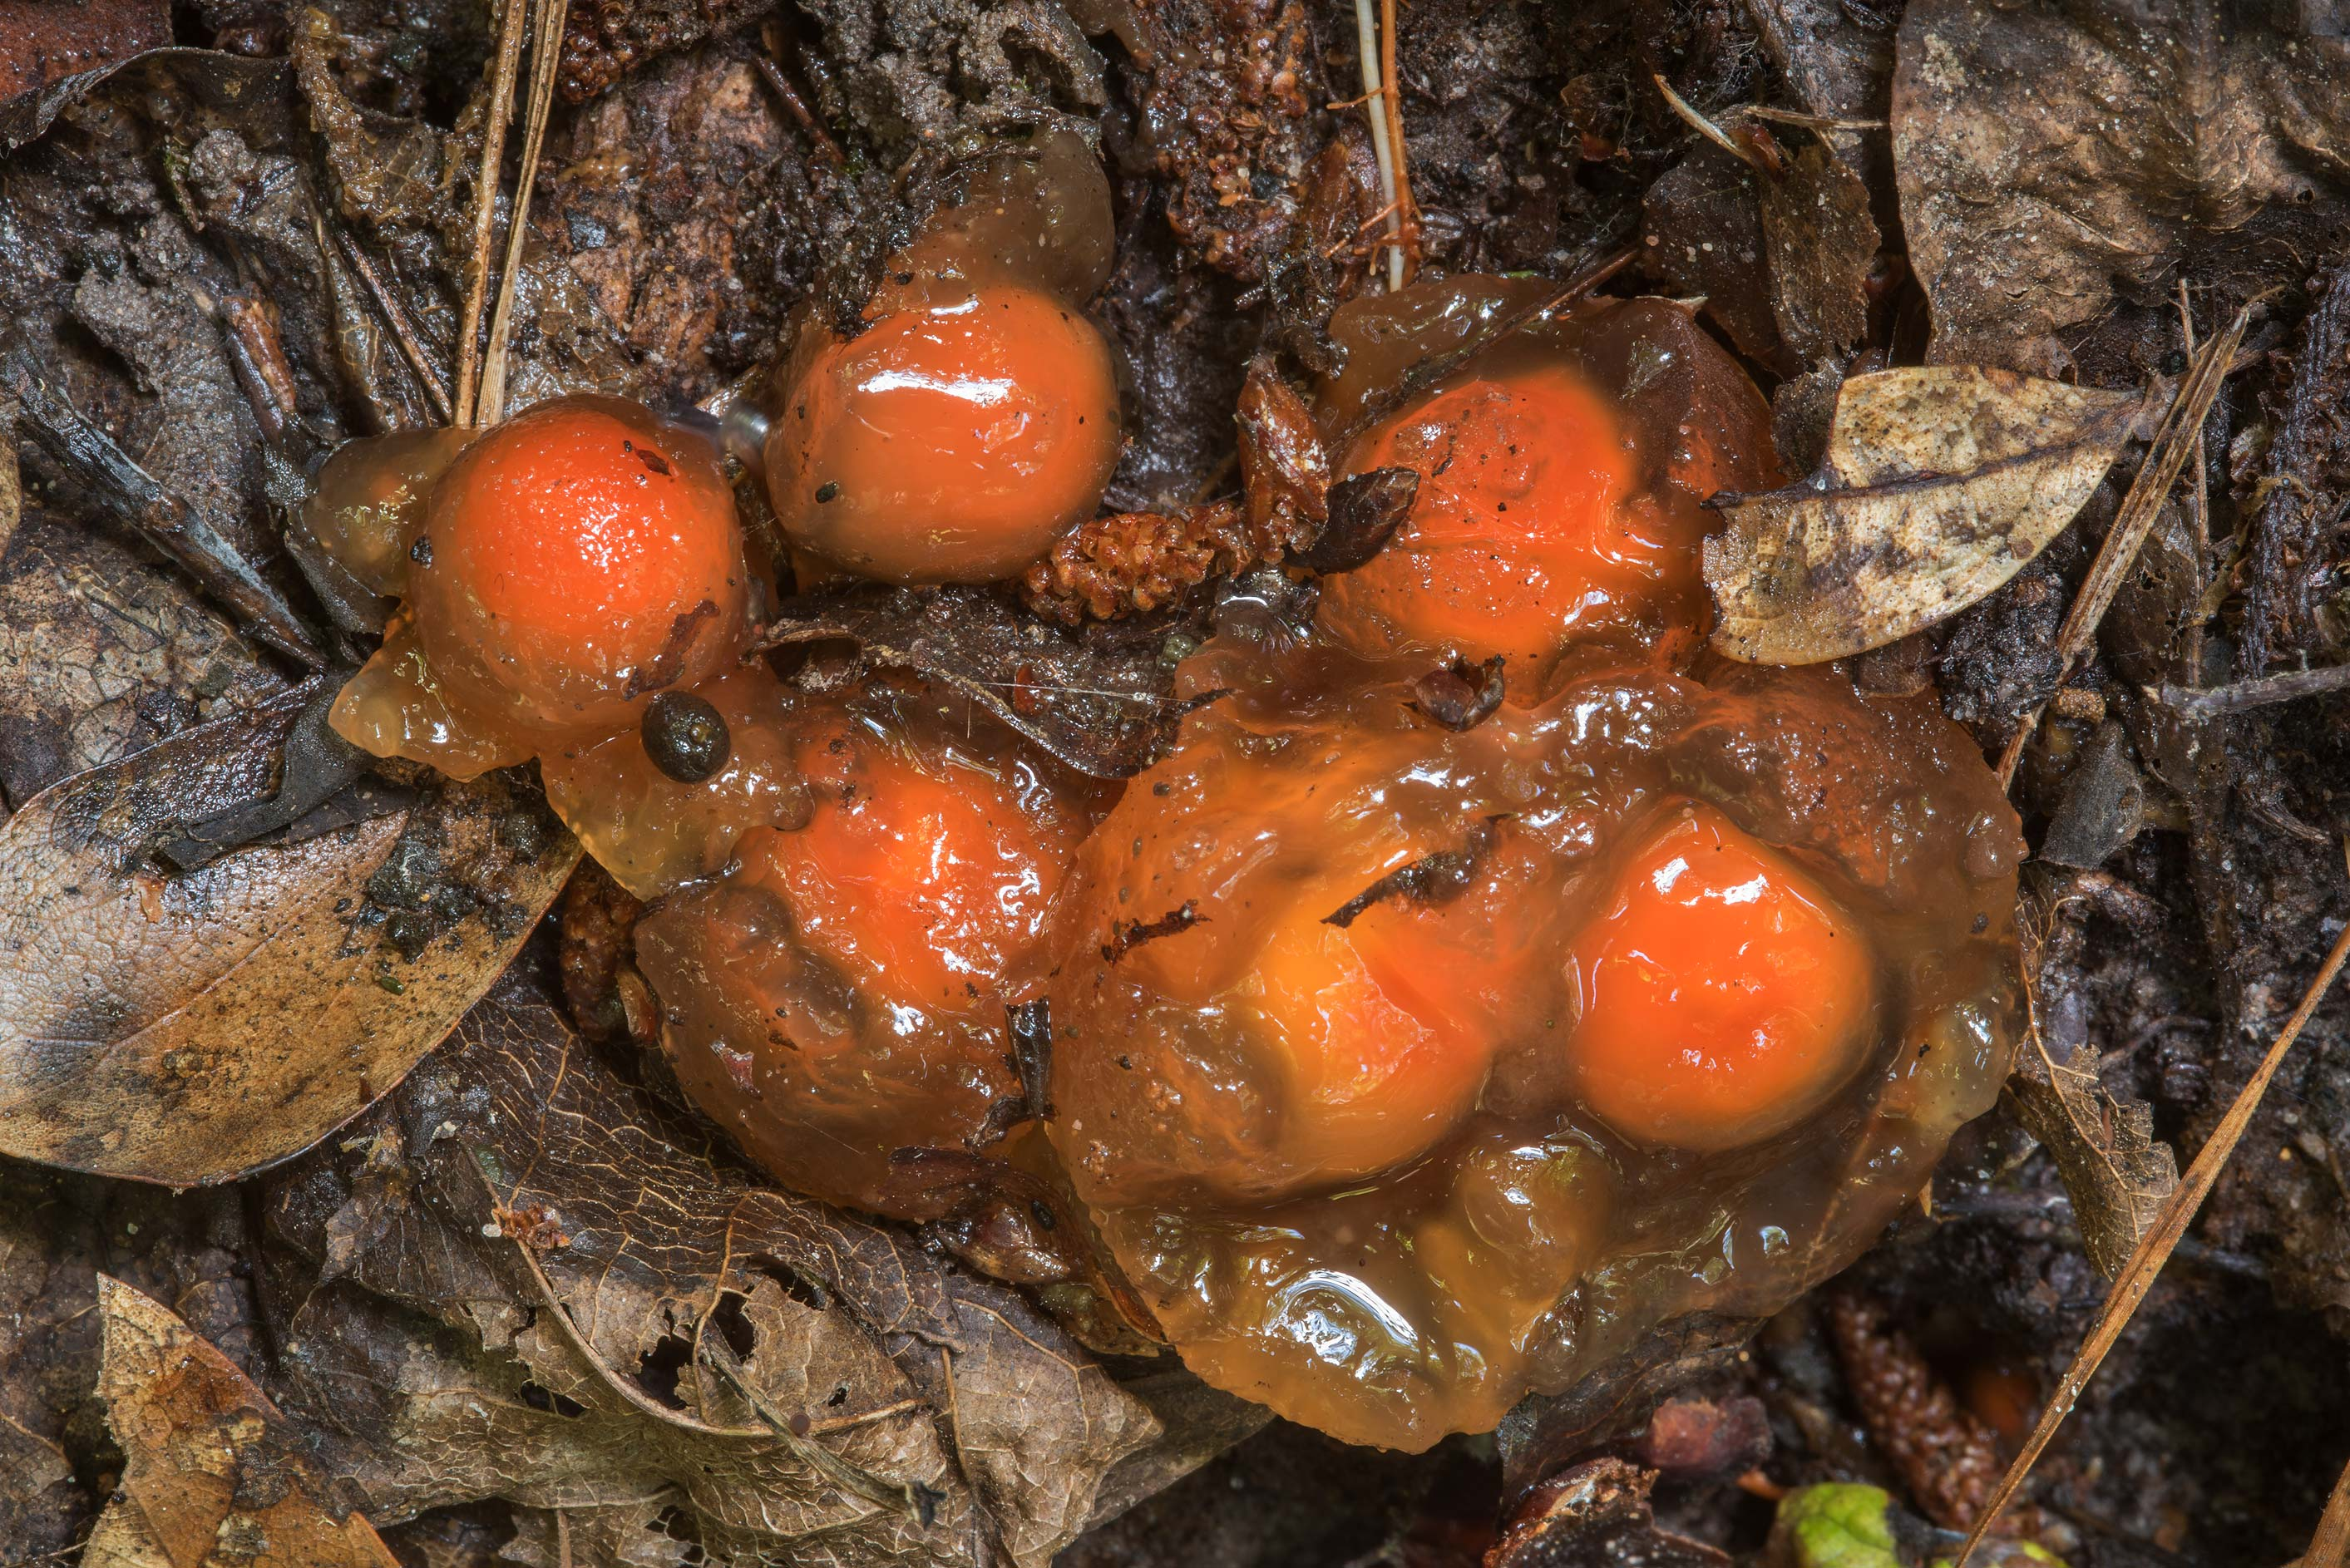 Stalked puffball-in-aspic mushrooms (Calostoma...National Preserve. Kountze, Texas